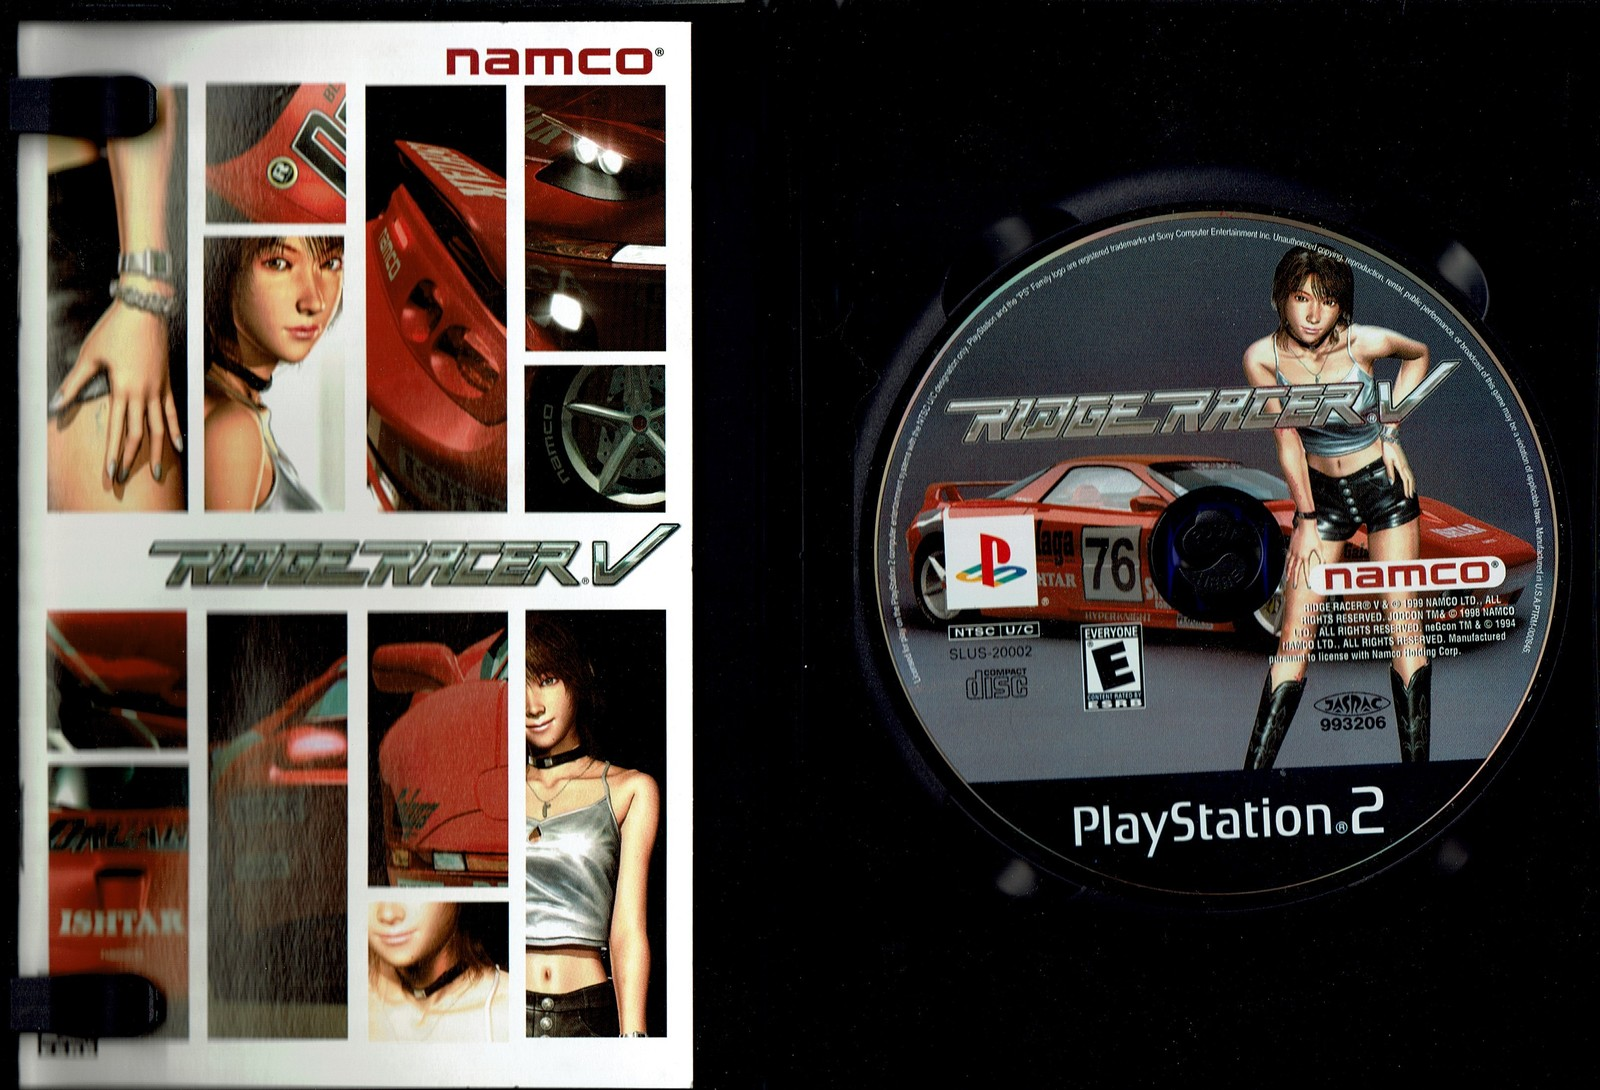 Ridge Racer V (5), PlayStation 2, Bandai Namco, SLUS-20002, Complete with Manual